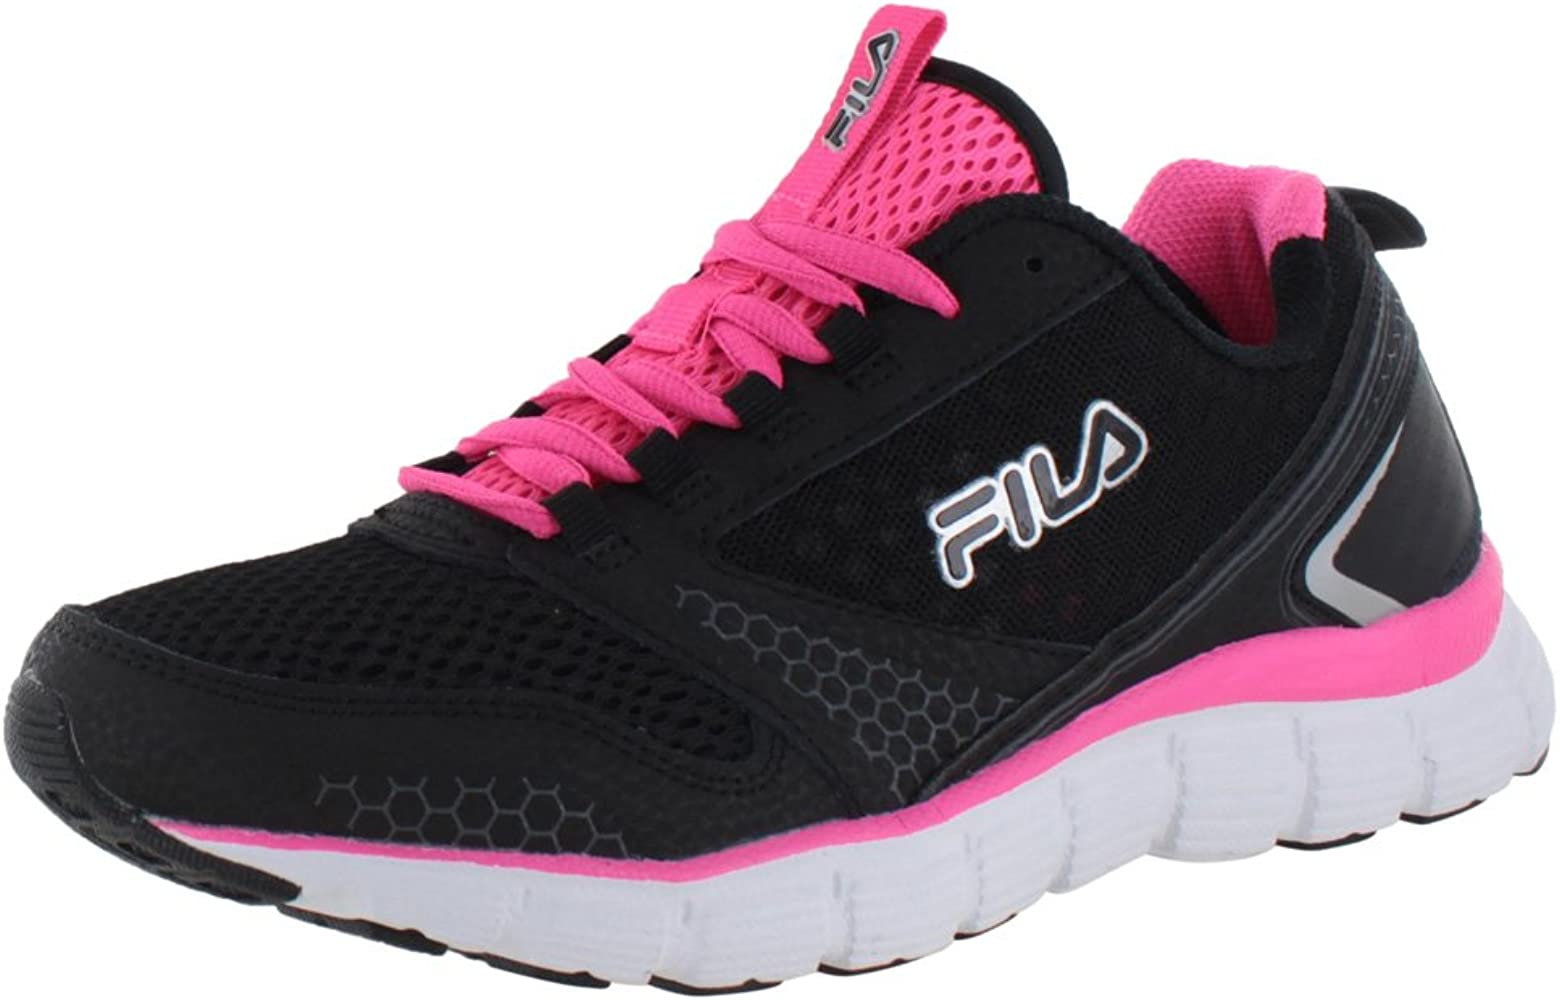 Fila de Memoria Windstar Las Zapatillas de Running: Amazon.es ...